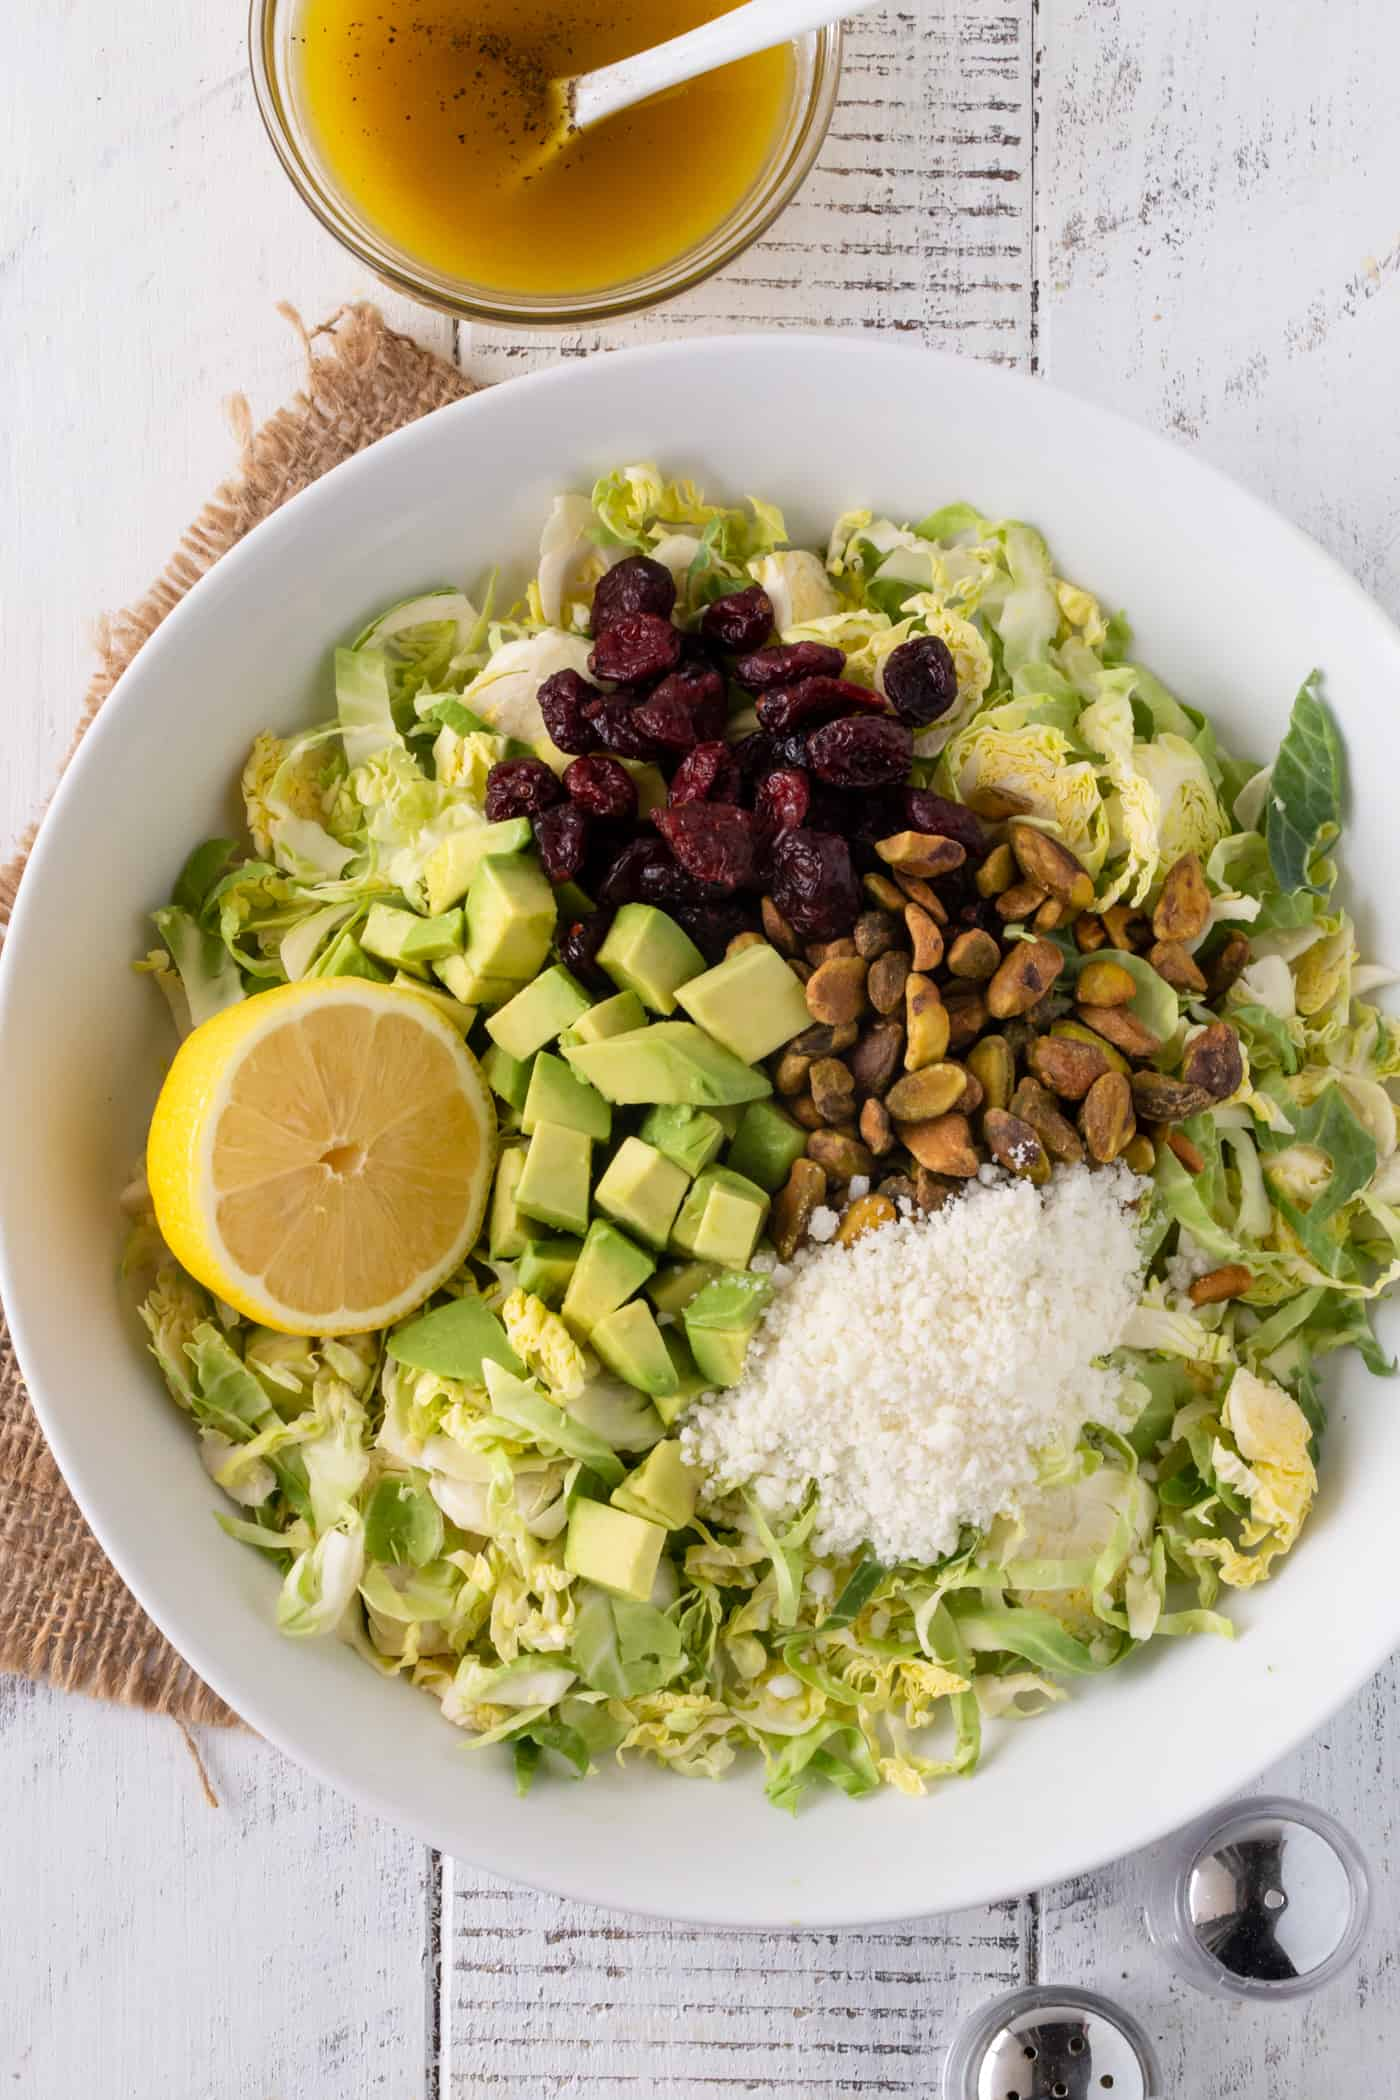 A deconstructed Shaved Brussels Sprouts Salad with Citrus Vinaigrette in a white bowl. Garnished with fresh avocado, dried cranberries, Pecorino cheese and pistachios.